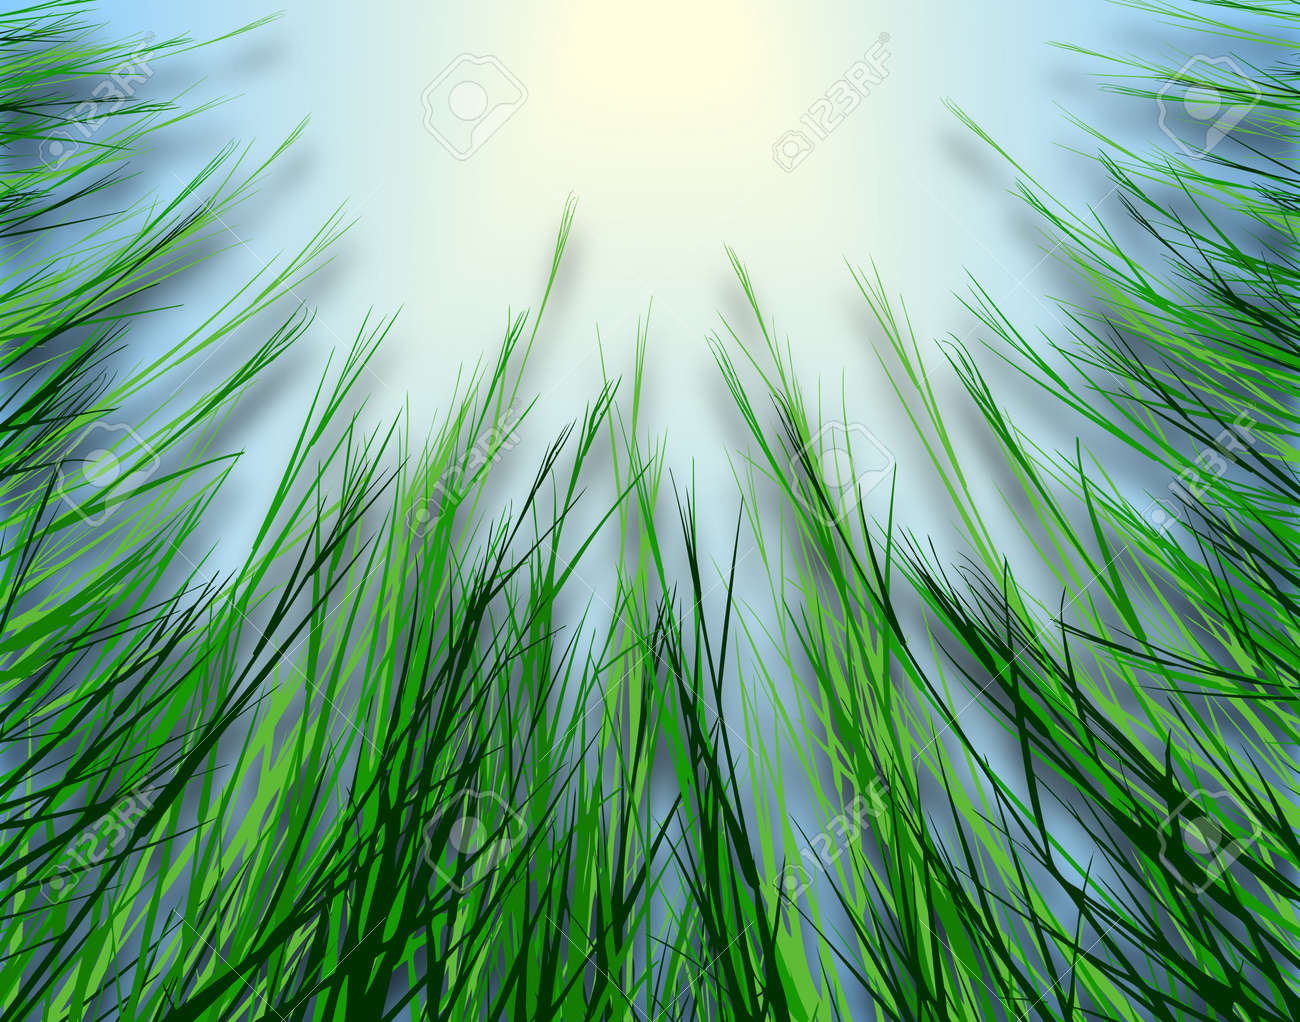 Illustrated design looking up through rough grass Stock Photo - 6997604